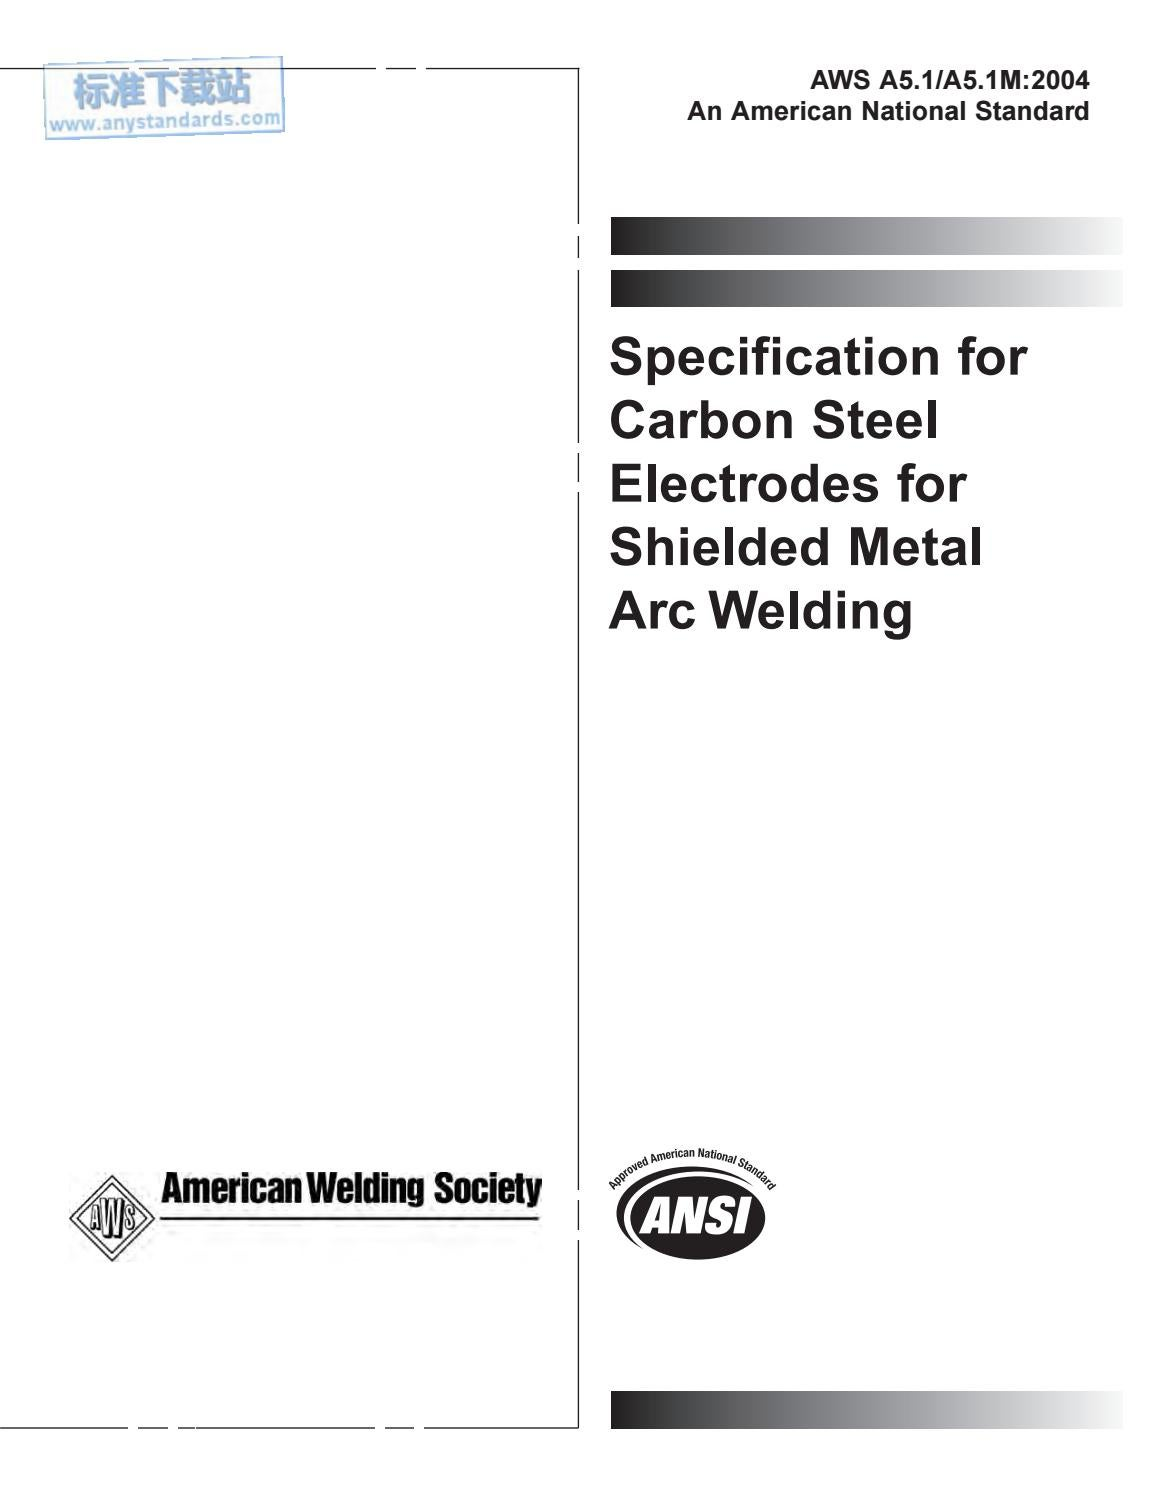 aws a5 1 a5 1m 2004 specification for carbon steel